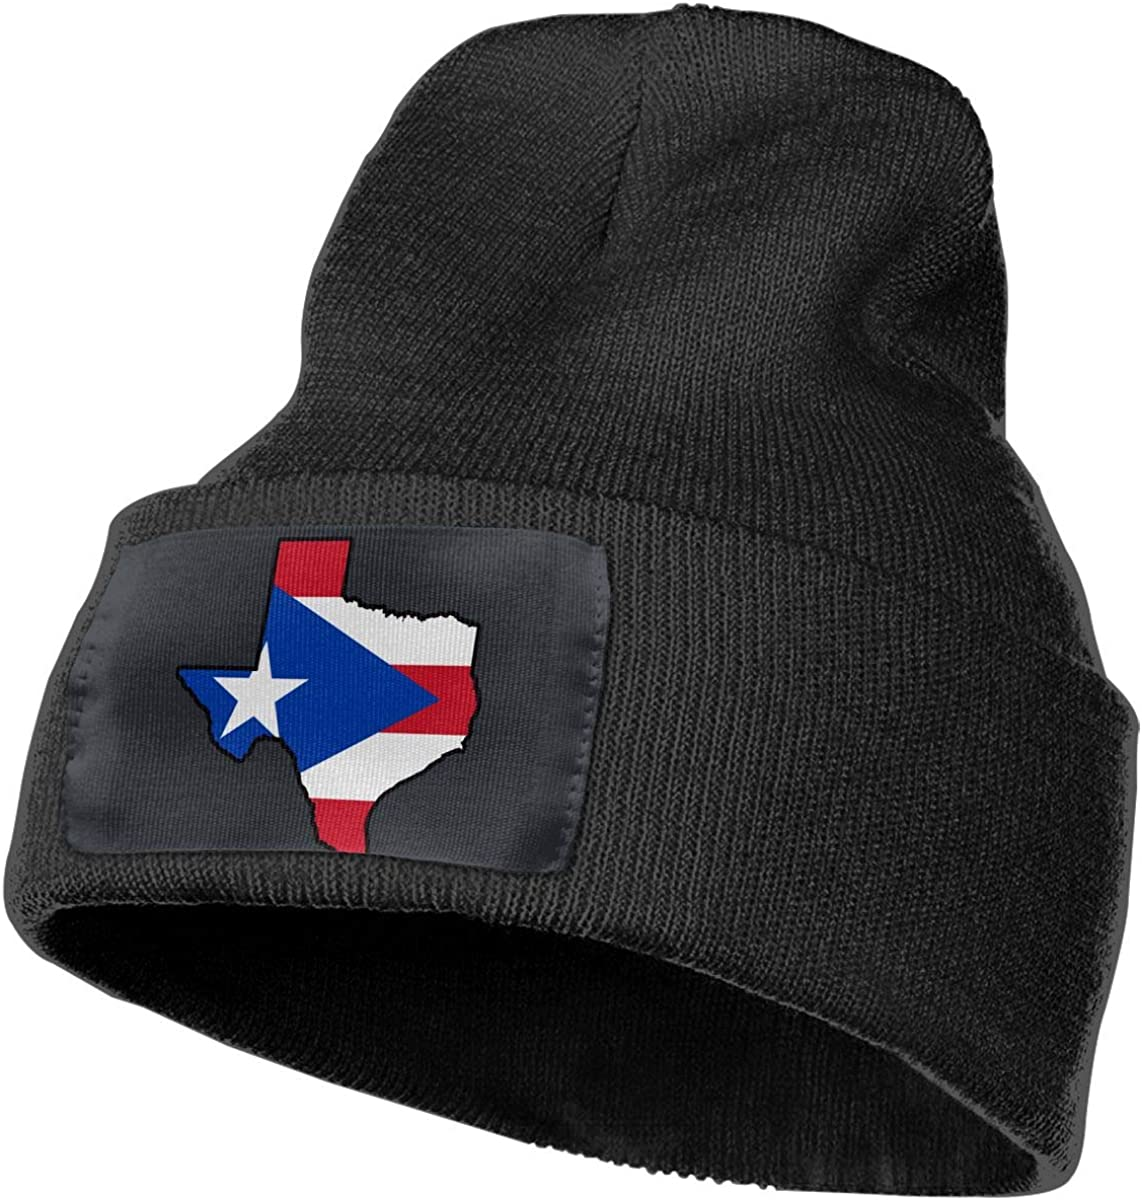 100/% Acrylic Beanie Hat Puerto Rico Flag Texas Map Warm Knitting Hat Mens Womens